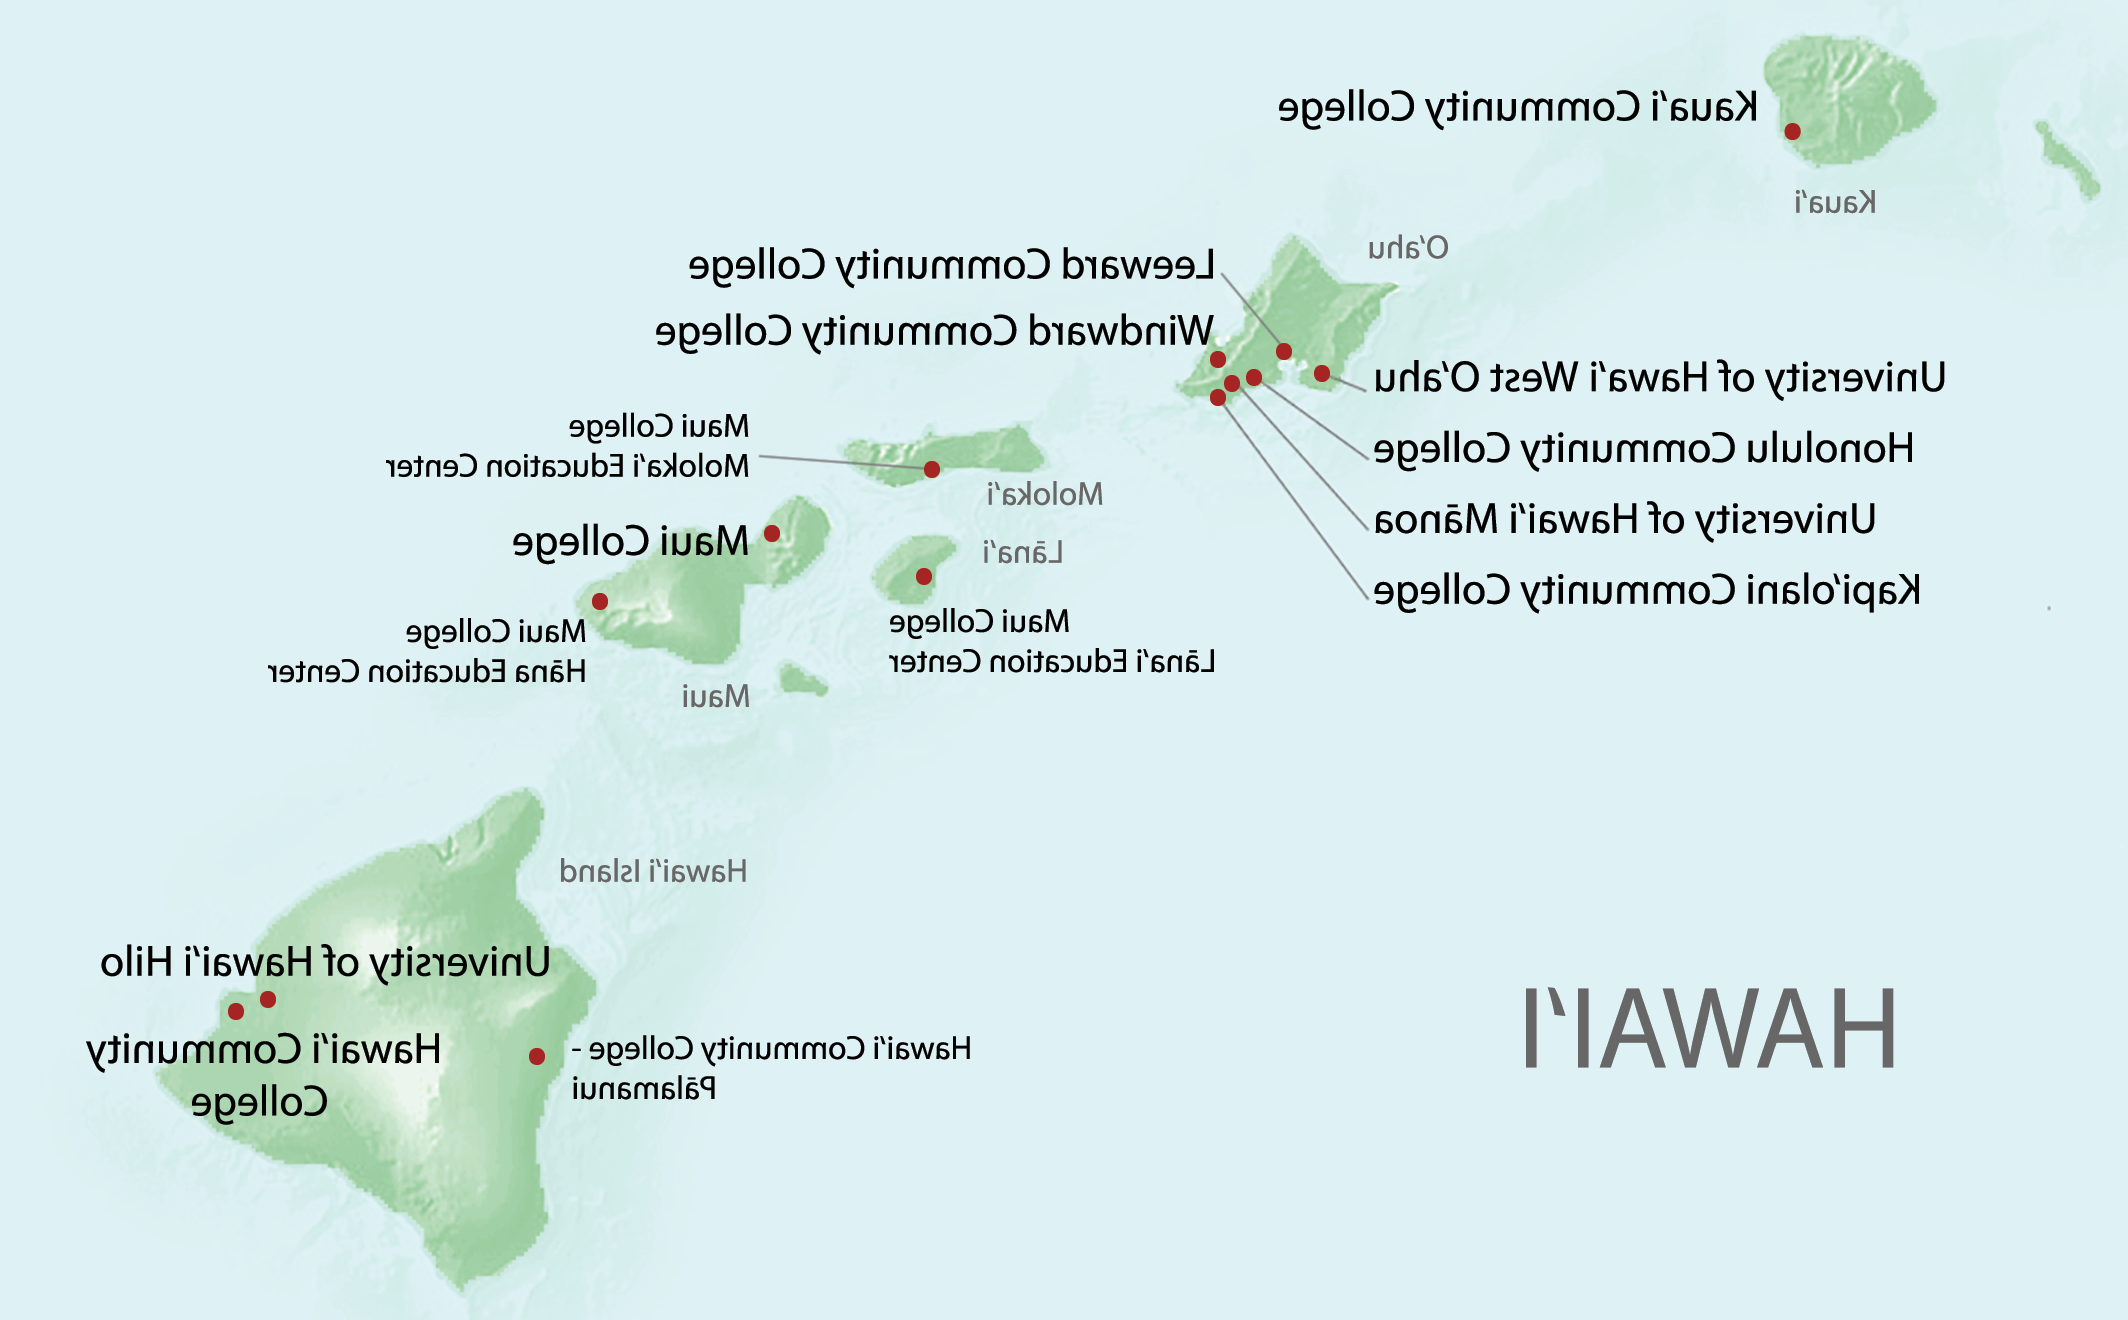 Map of University of Hawaii campuses to show on what island and where each university, college 和 education center is located.